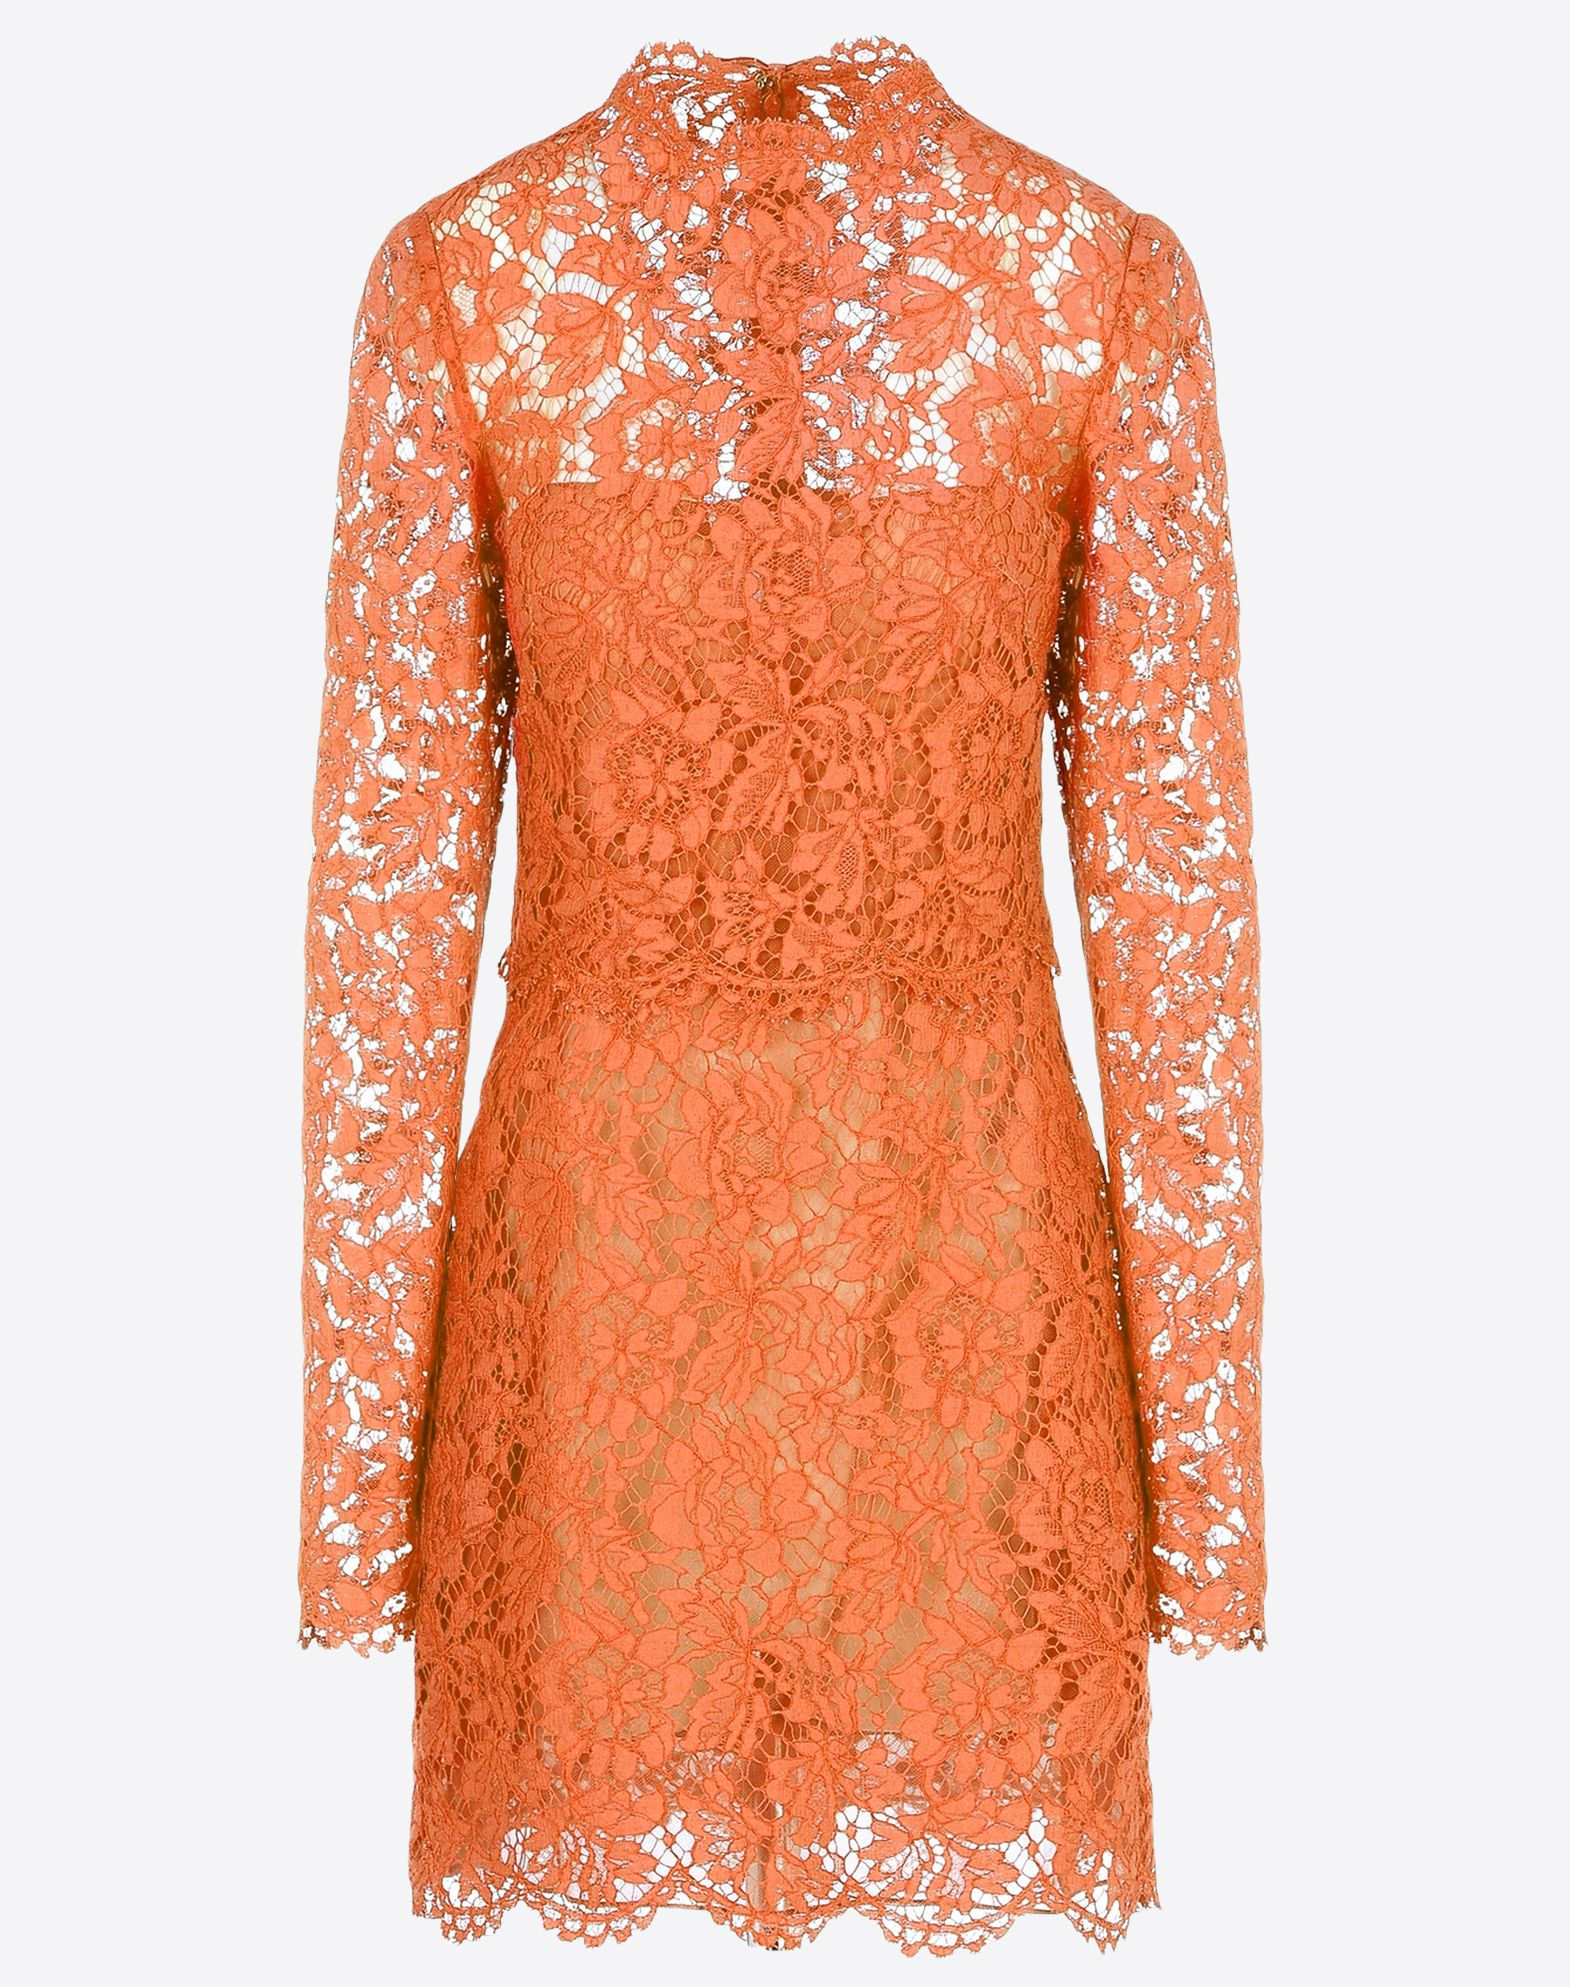 VALENTINO Pleated detailing Lace Solid color Round collar Zip Hook-and-eye closure Two front pockets Lined interior Long sleeves  34440918br